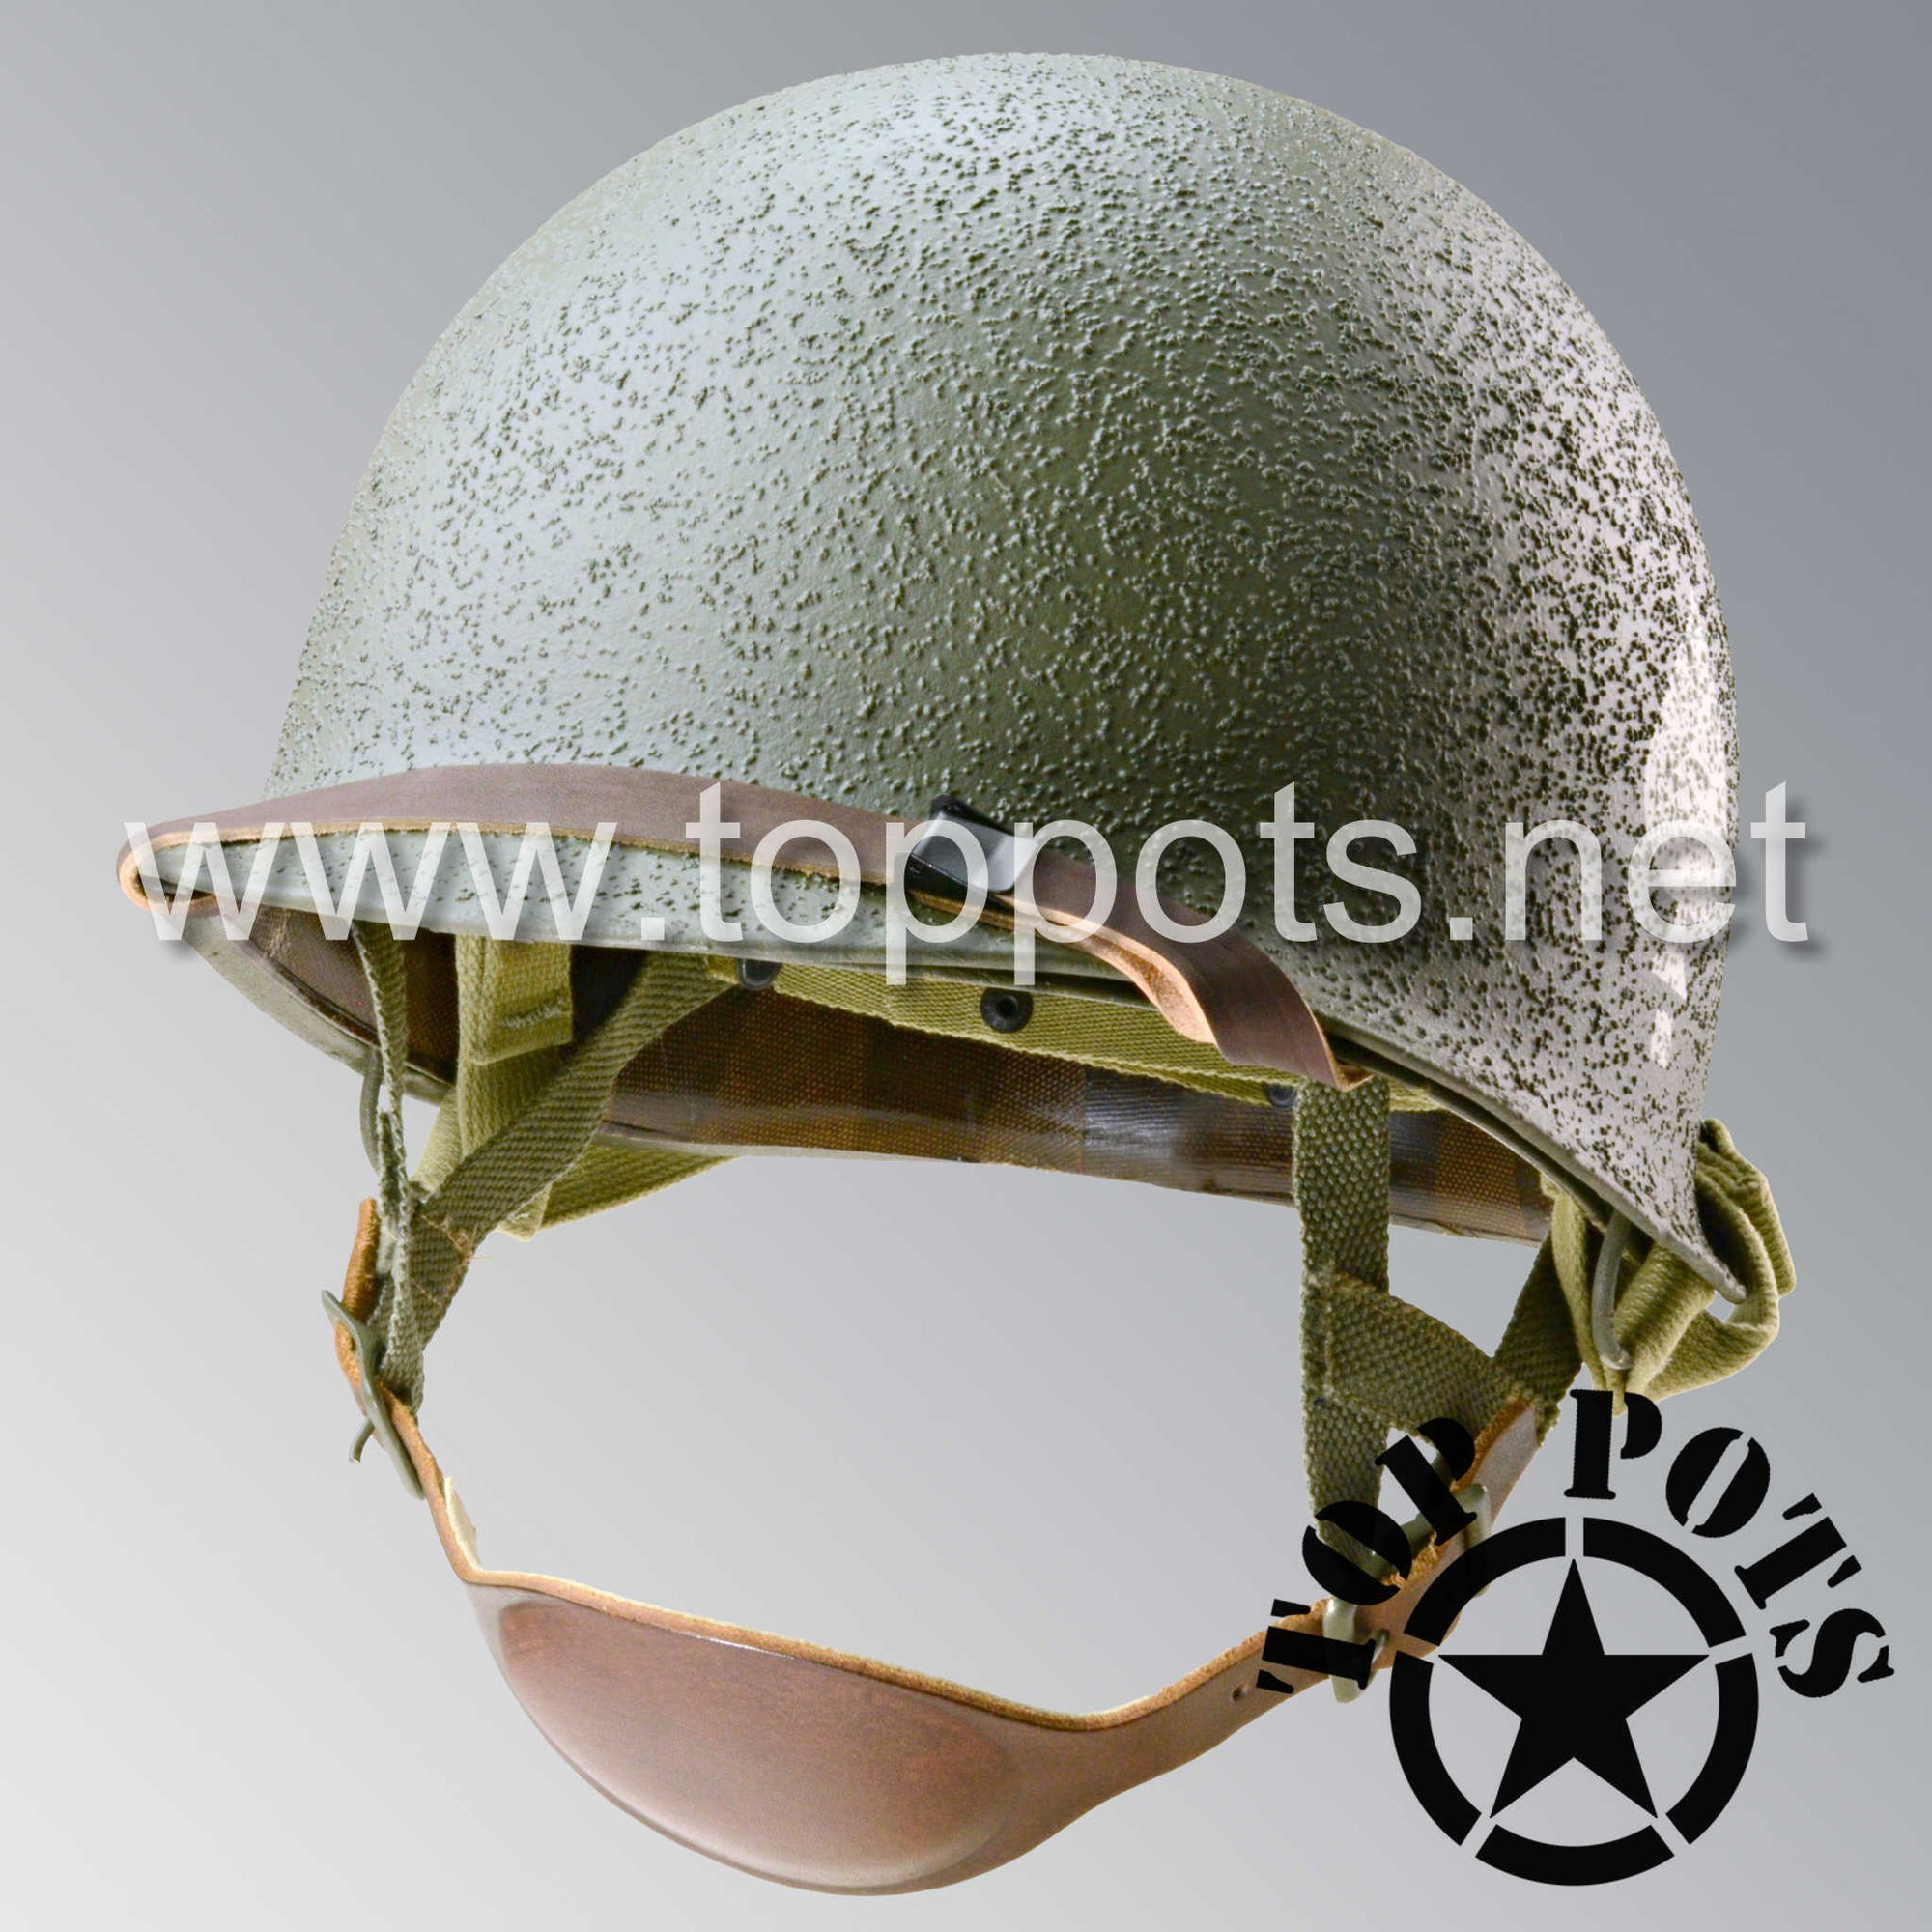 Image 1 of WWII US Army Restored Original M1C Paratrooper Airborne Helmet Swivel Bale Shell and Liner with 506th 2nd Battalion PIR NCO Emblem